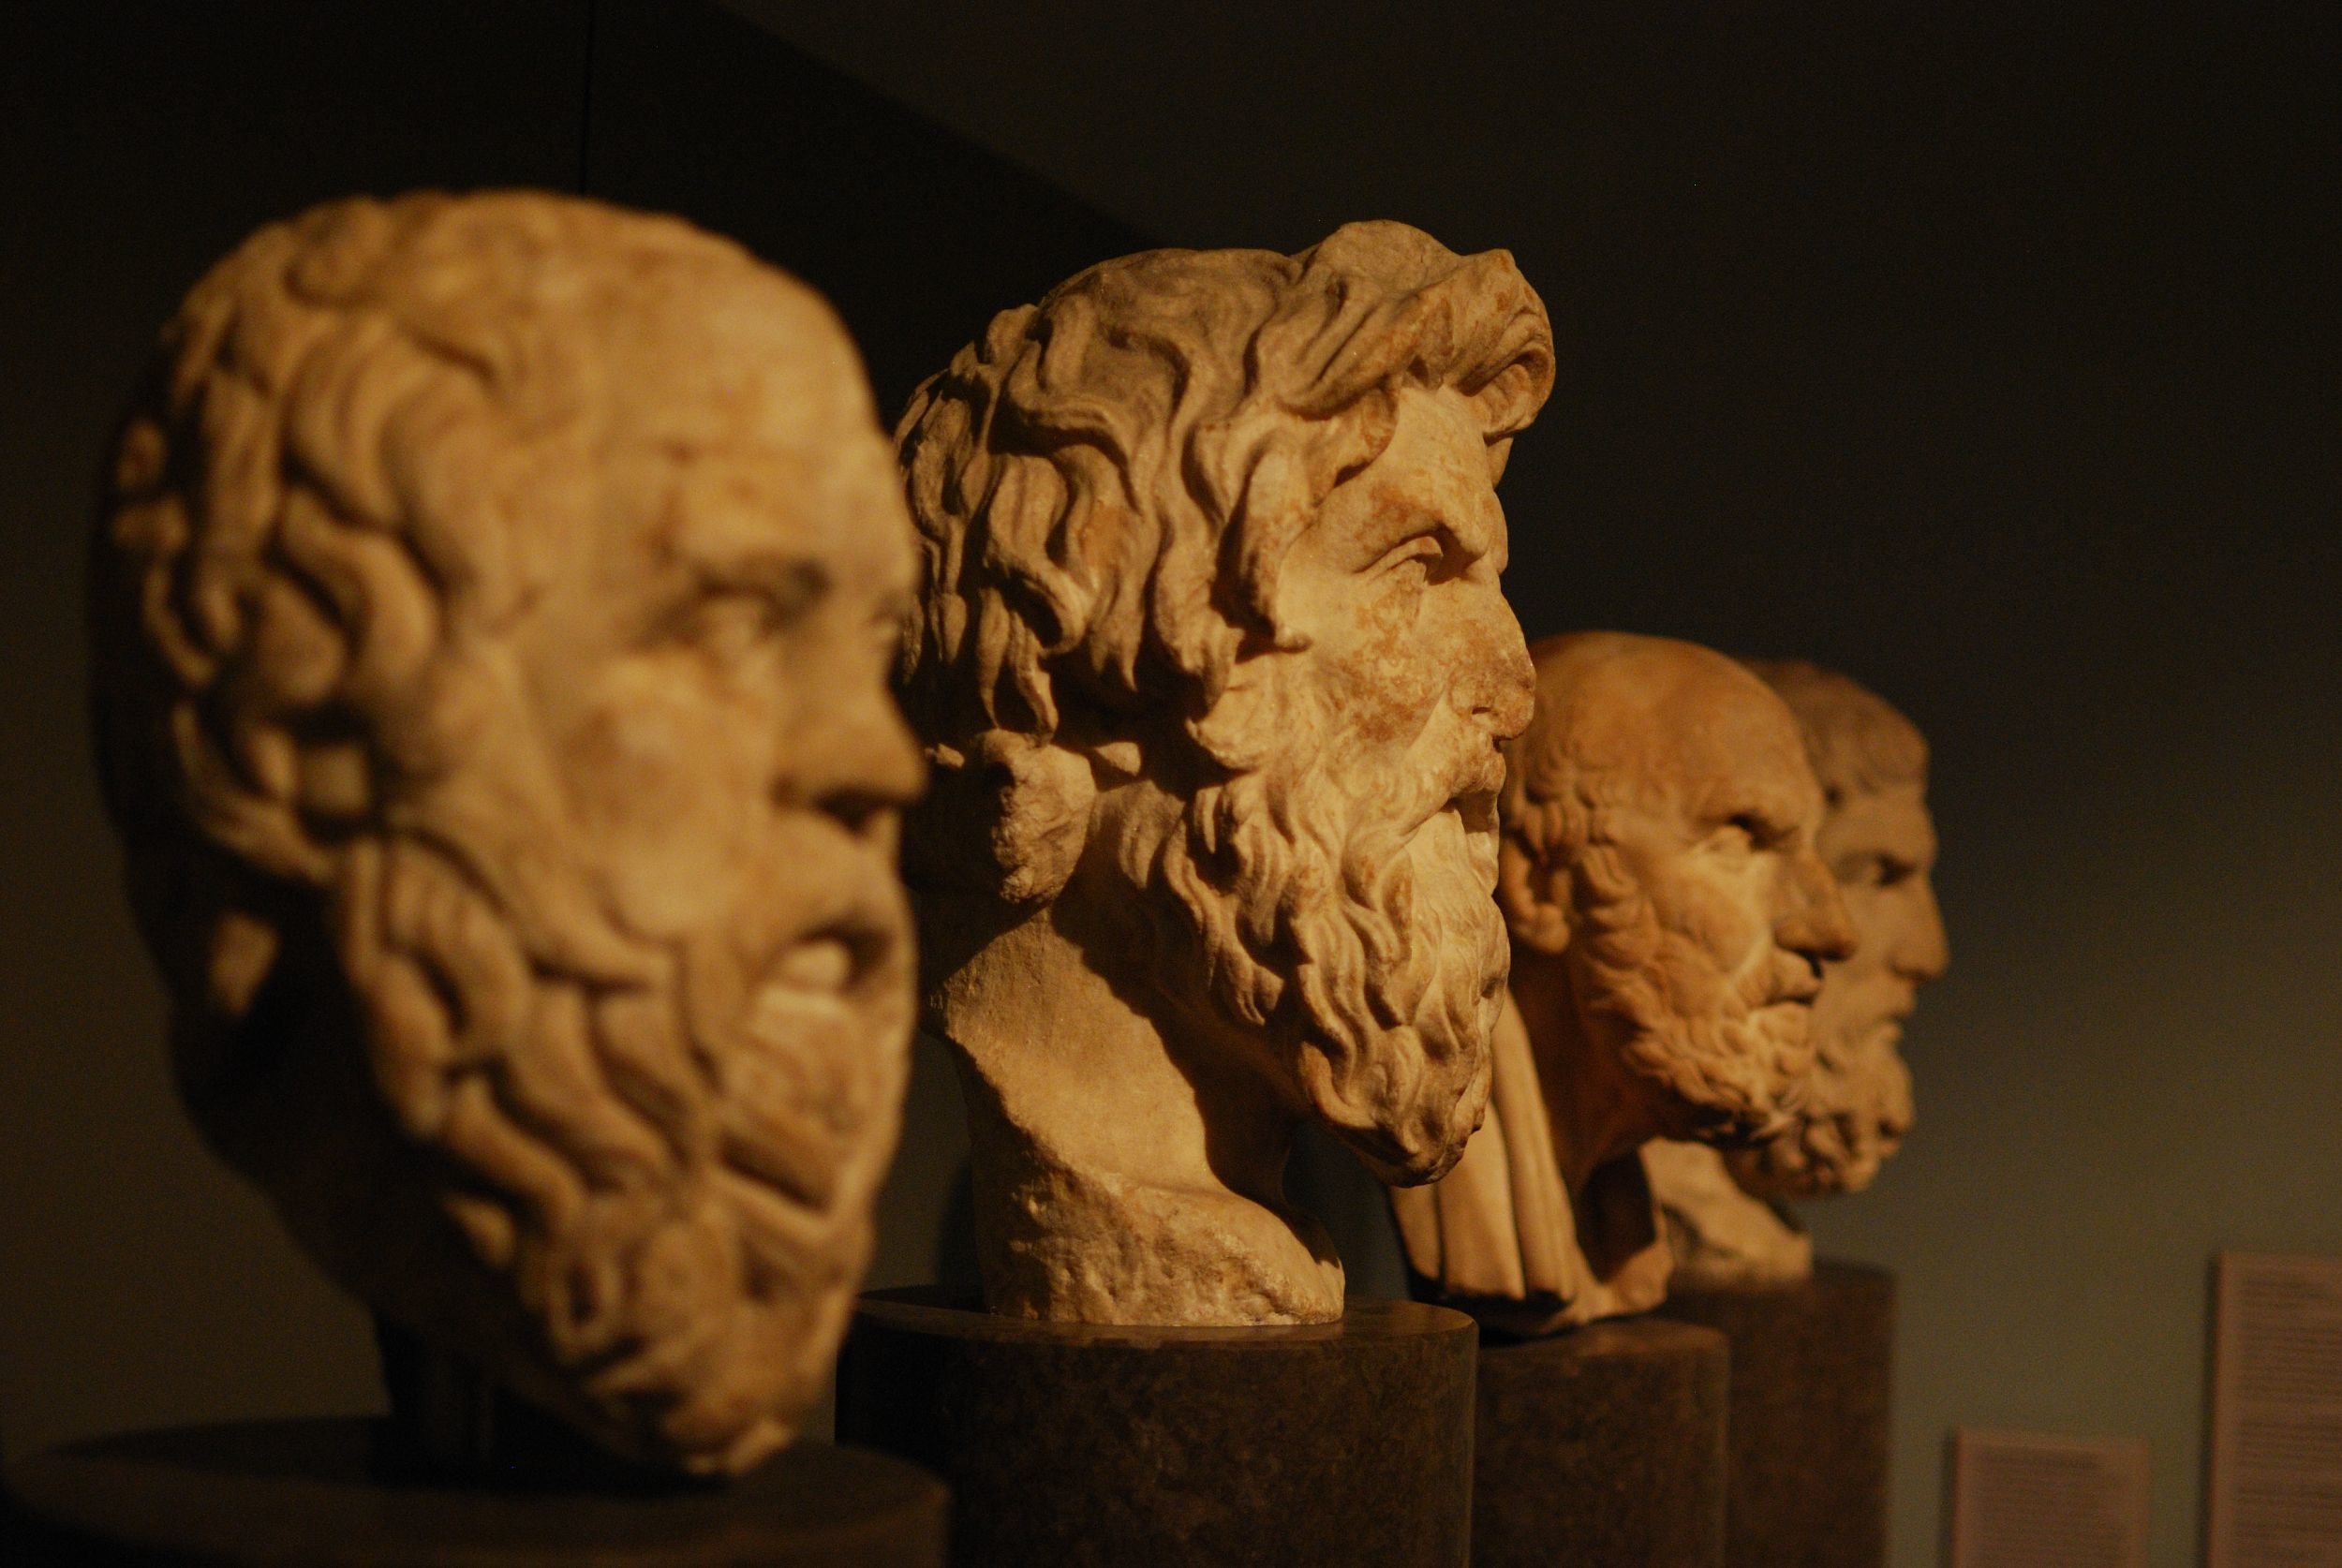 Greek_philosopher_busts.jpg#asset:5061